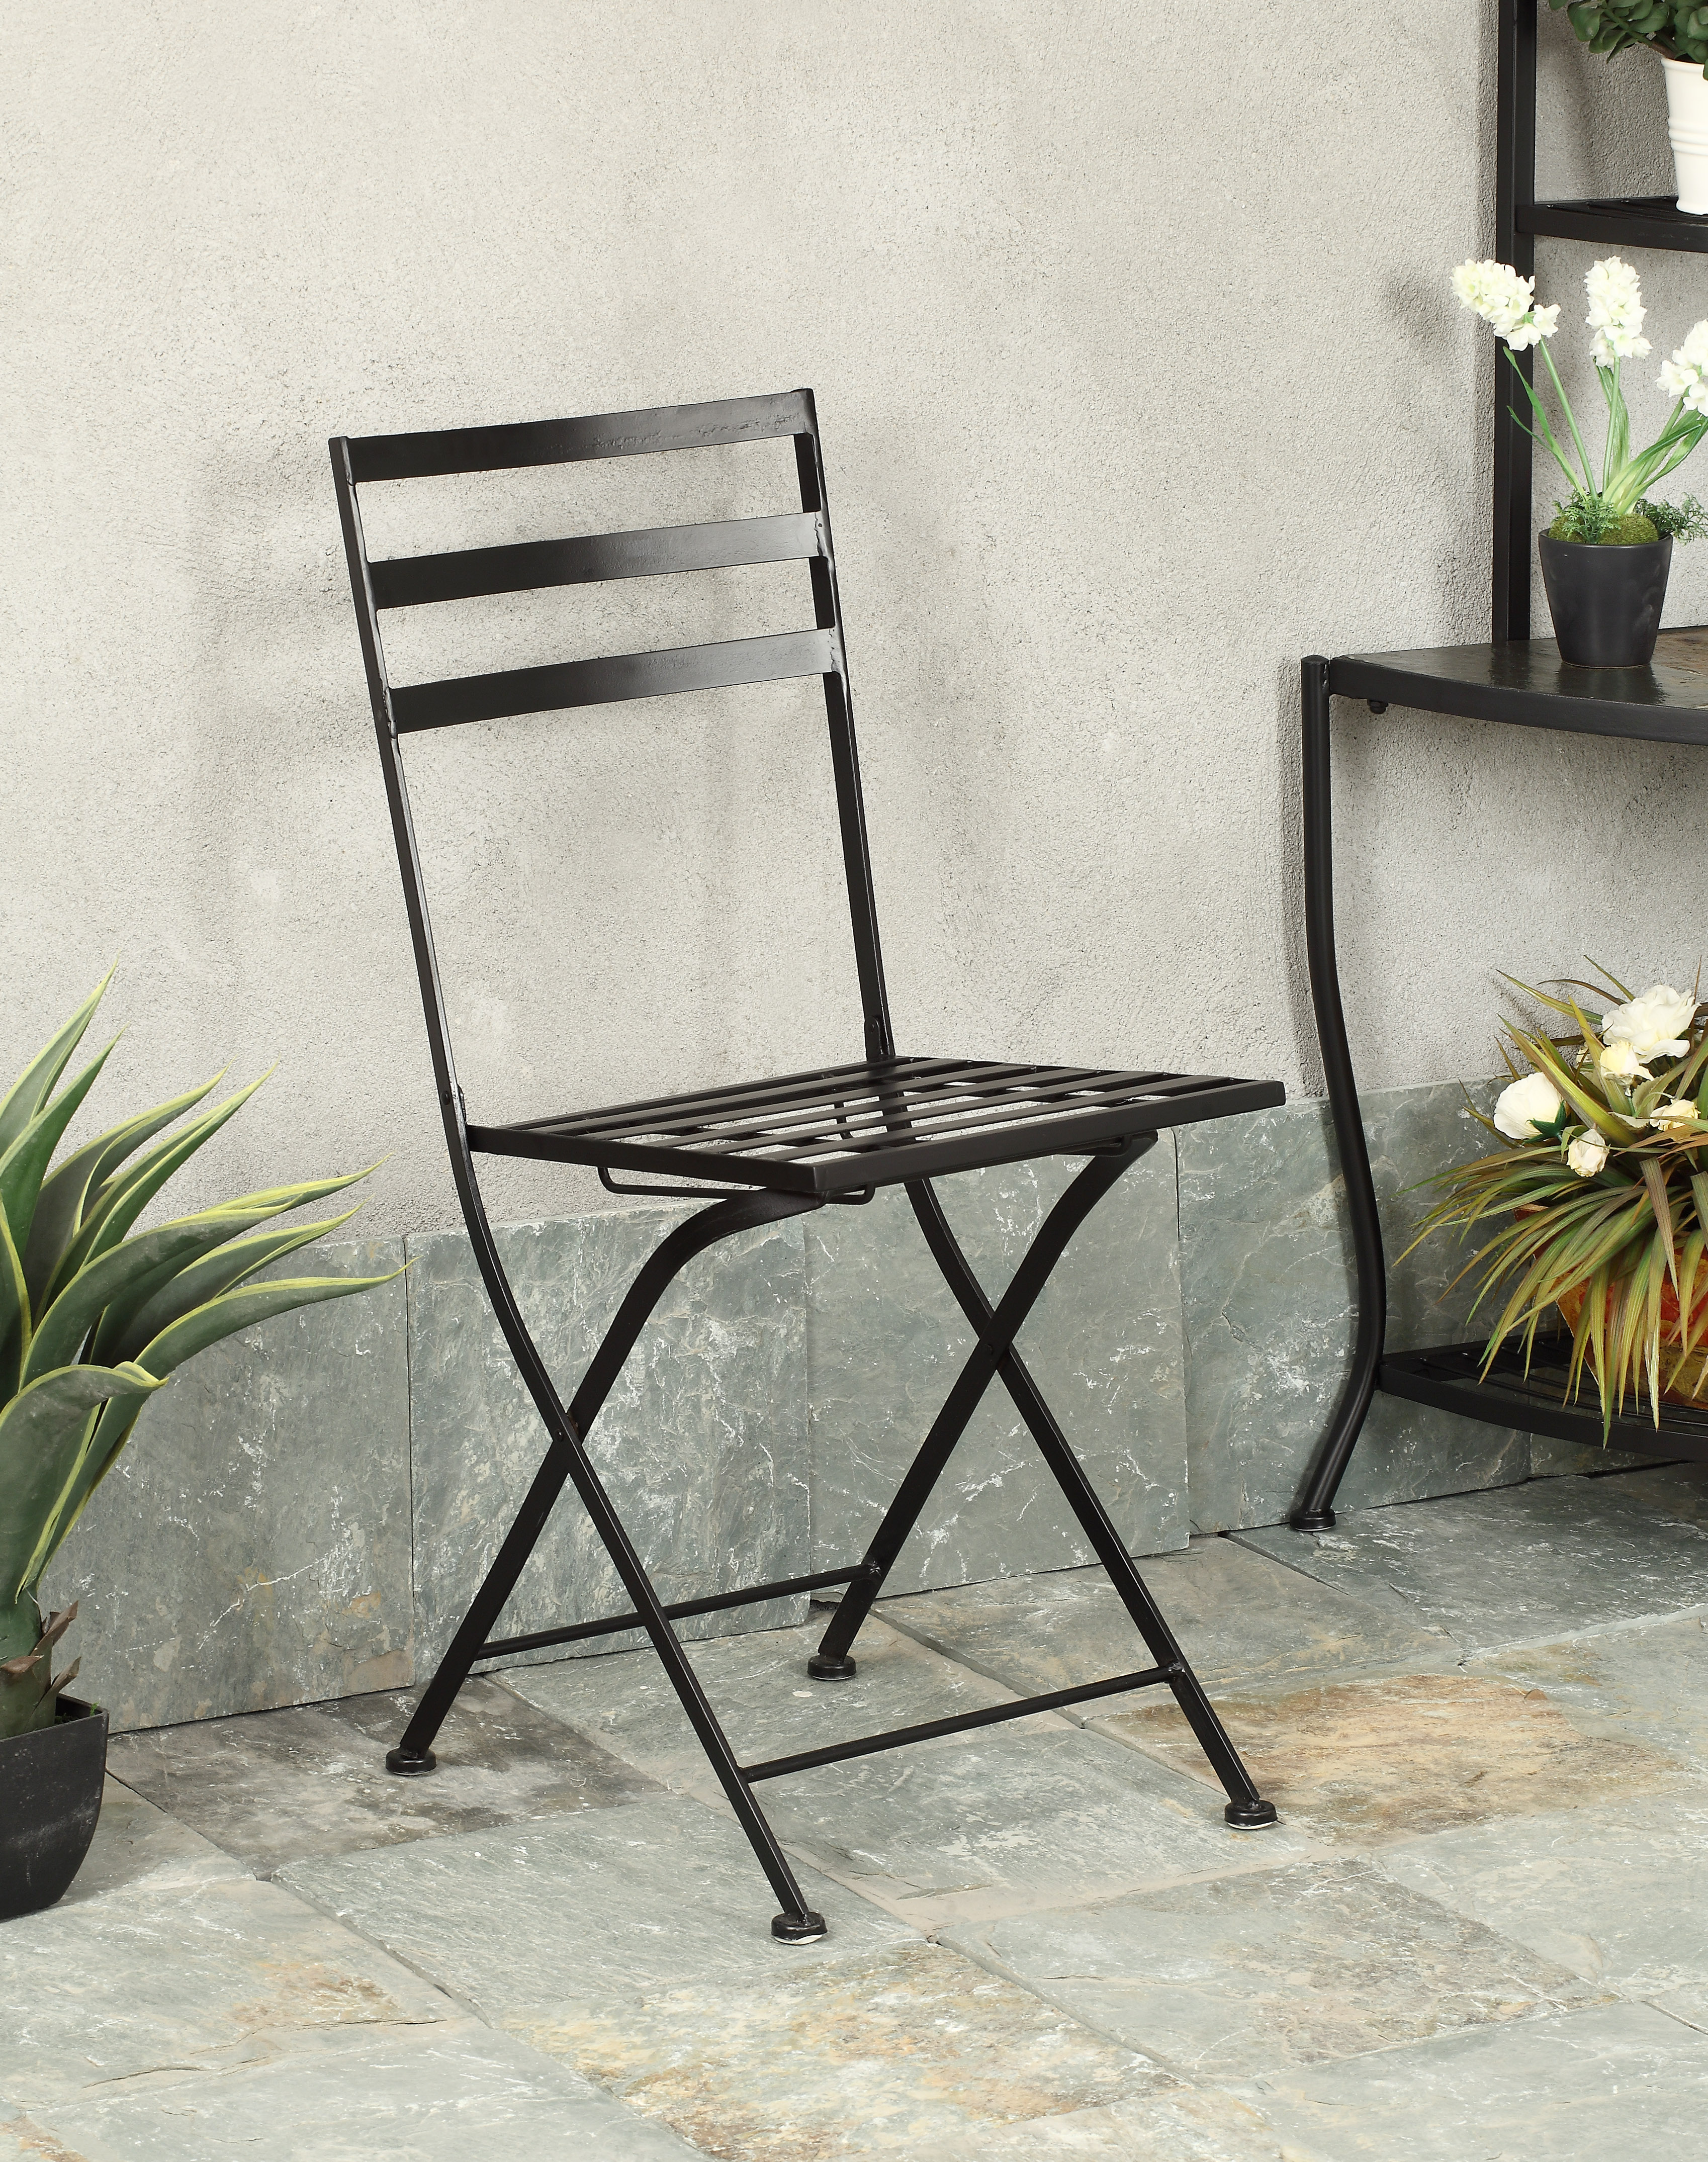 4D Concepts 601615 Black Metal Chair - Metal/Slate - 2 Pack